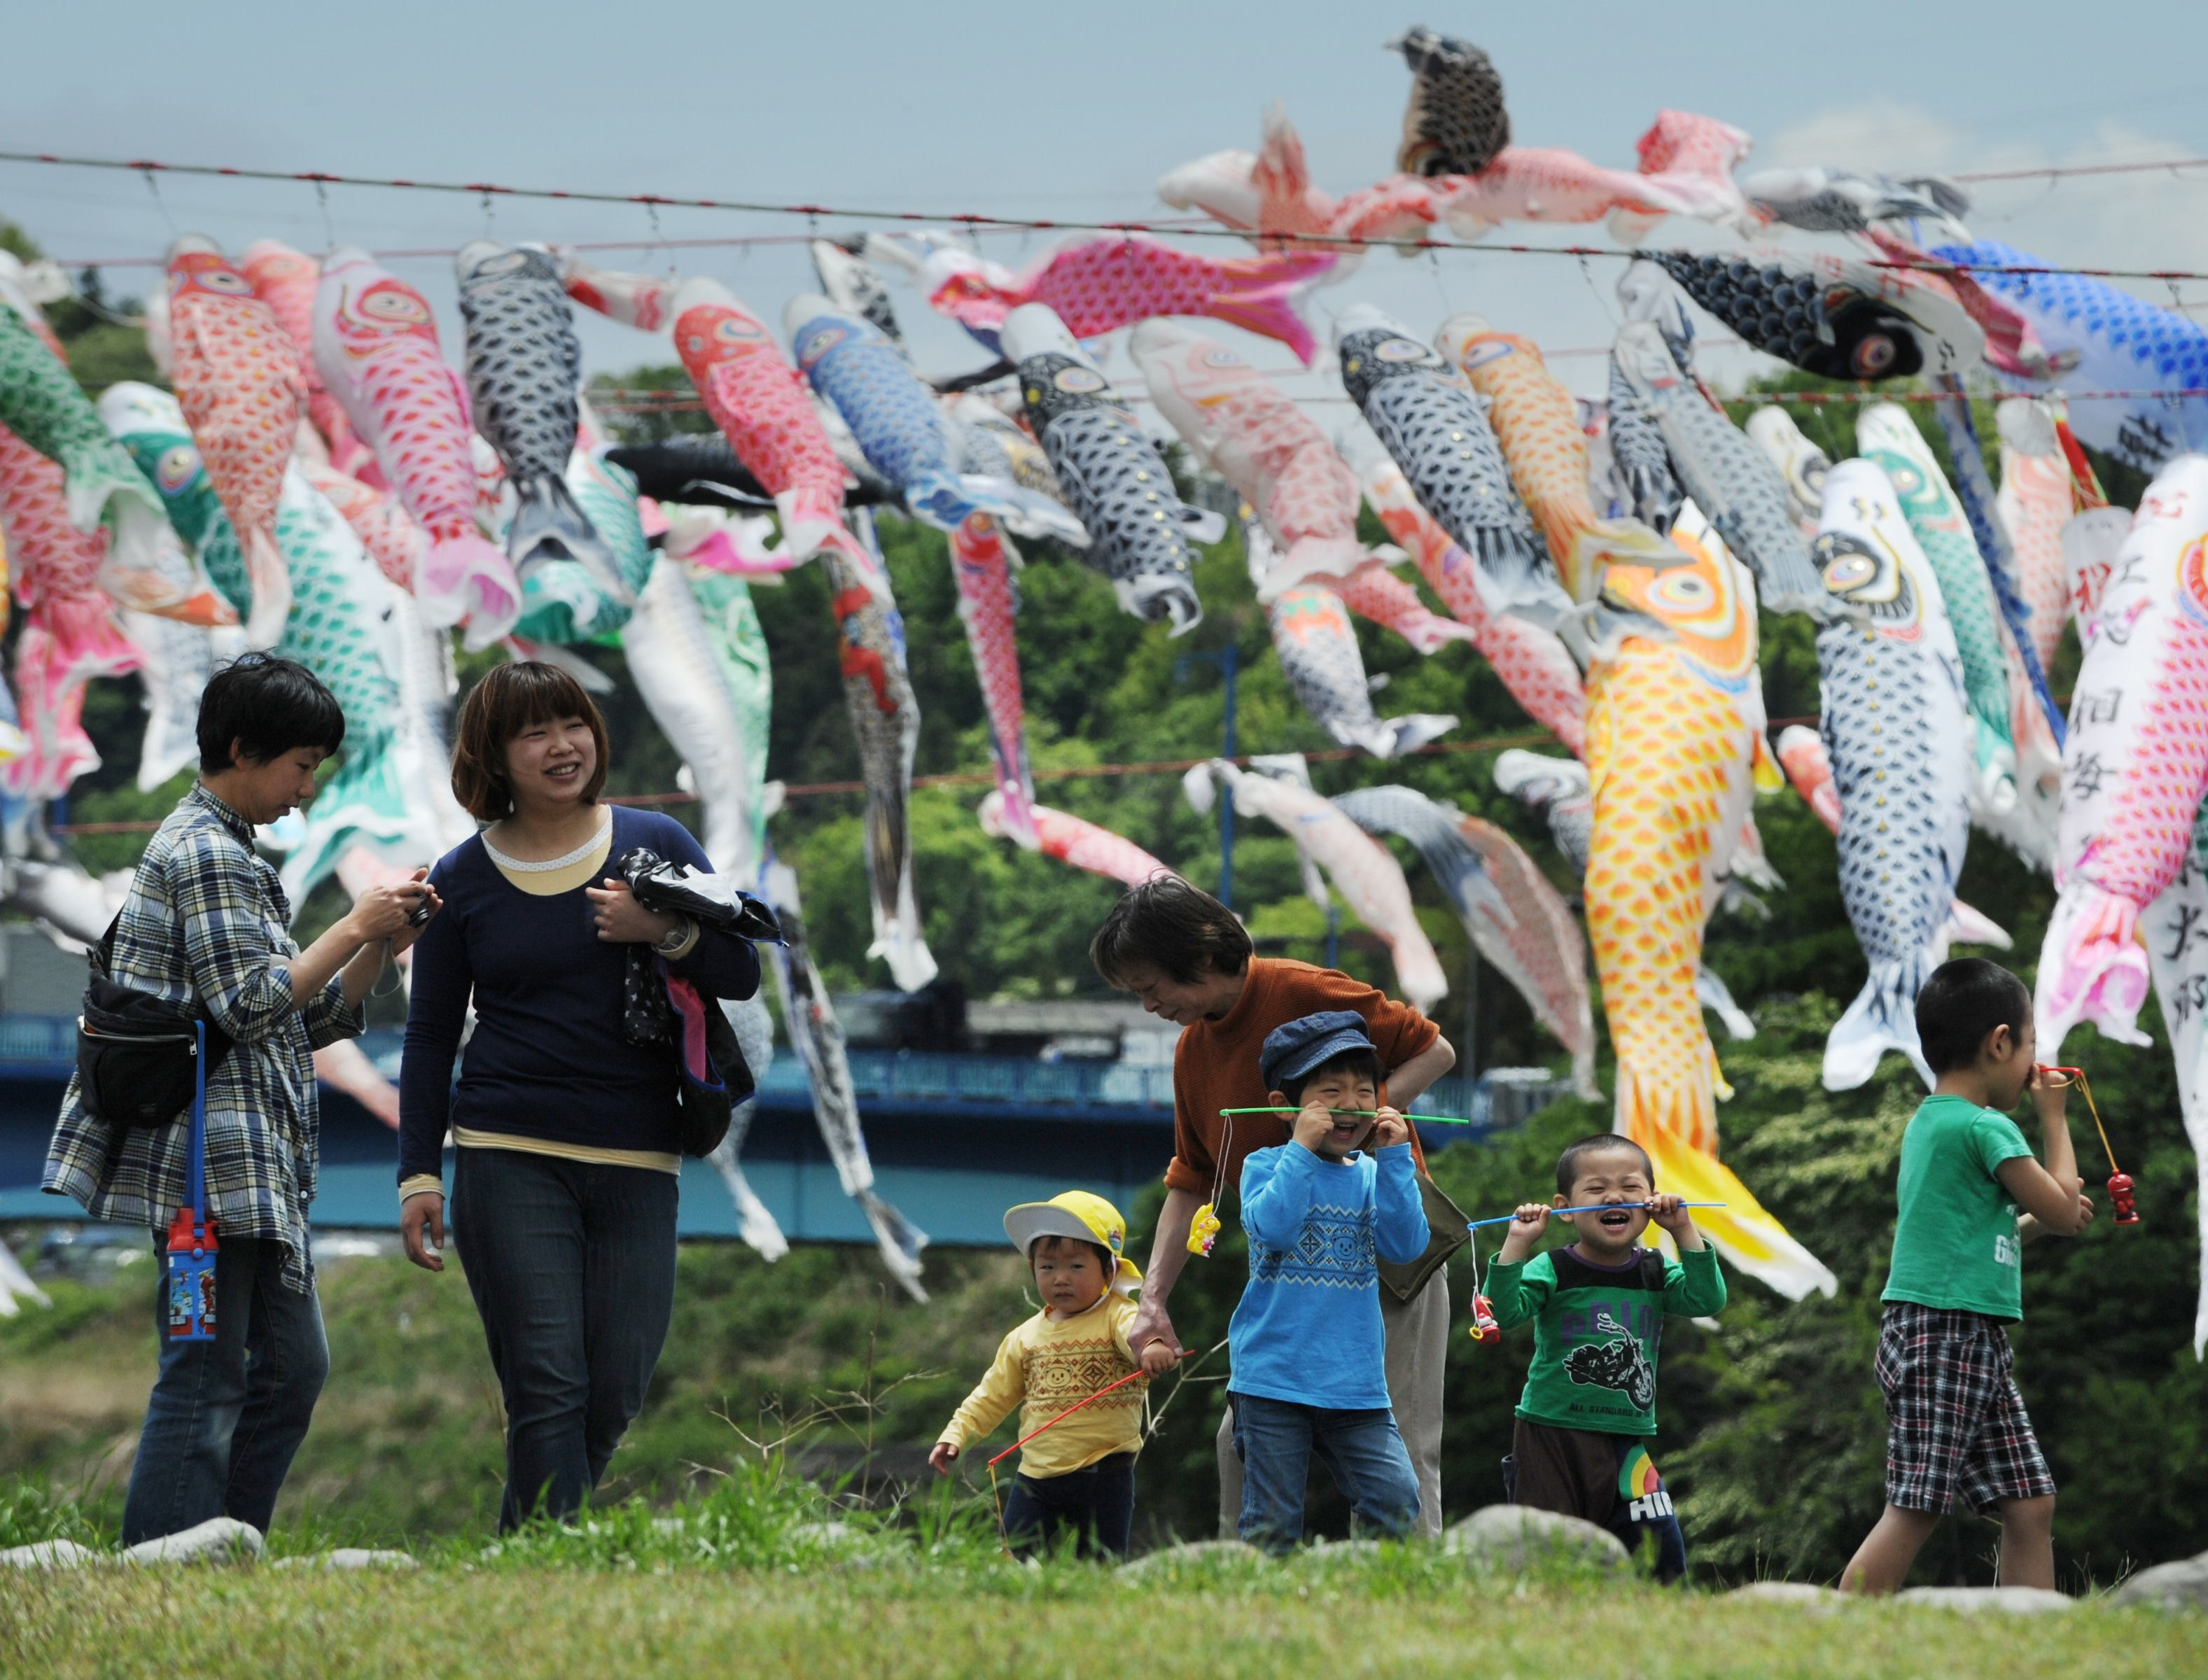 A family walks beside colourful carp streamers flying above a riverside park in Sagamihara, Kanagawa prefecture, Japan, in celebration of Children's Day. (Photo: AFP)A family walks beside colourful carp streamers flying above a riverside park in Sagamihara, Kanagawa prefecture, Japan, in celebration of Children's Day. (Photo: AFP)